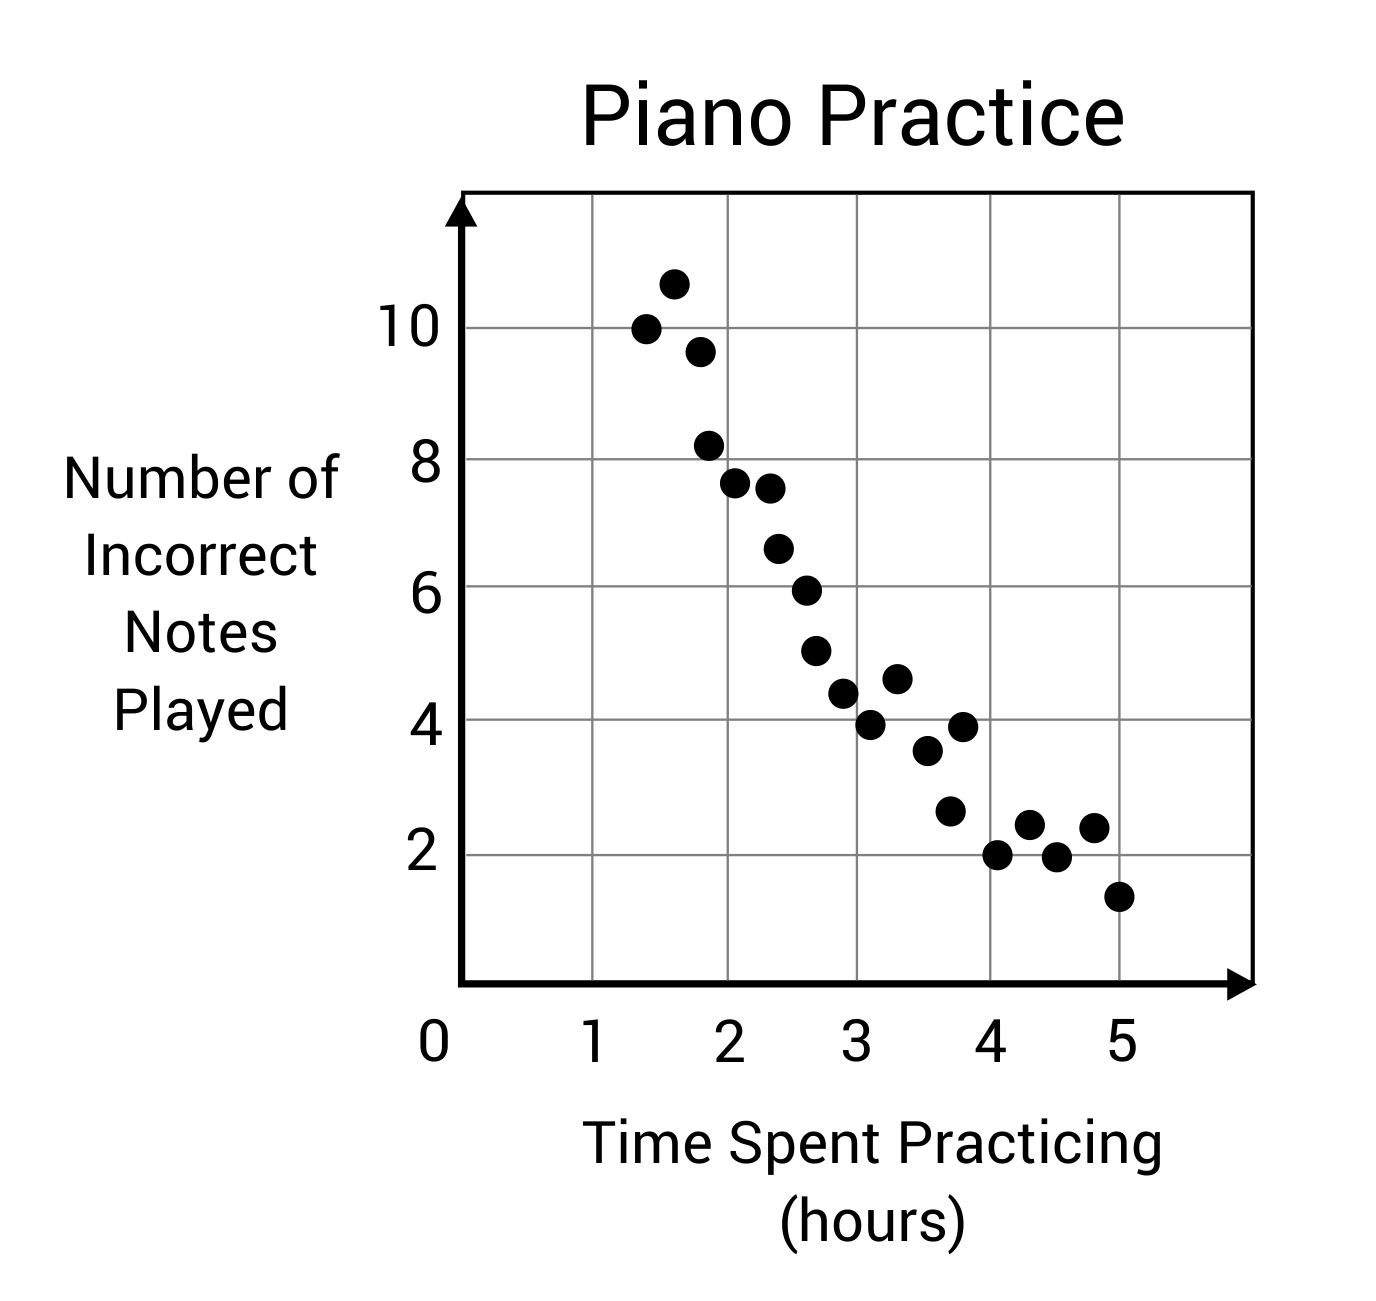 Scatter plot of number of incorrect notes played and time spent practicing